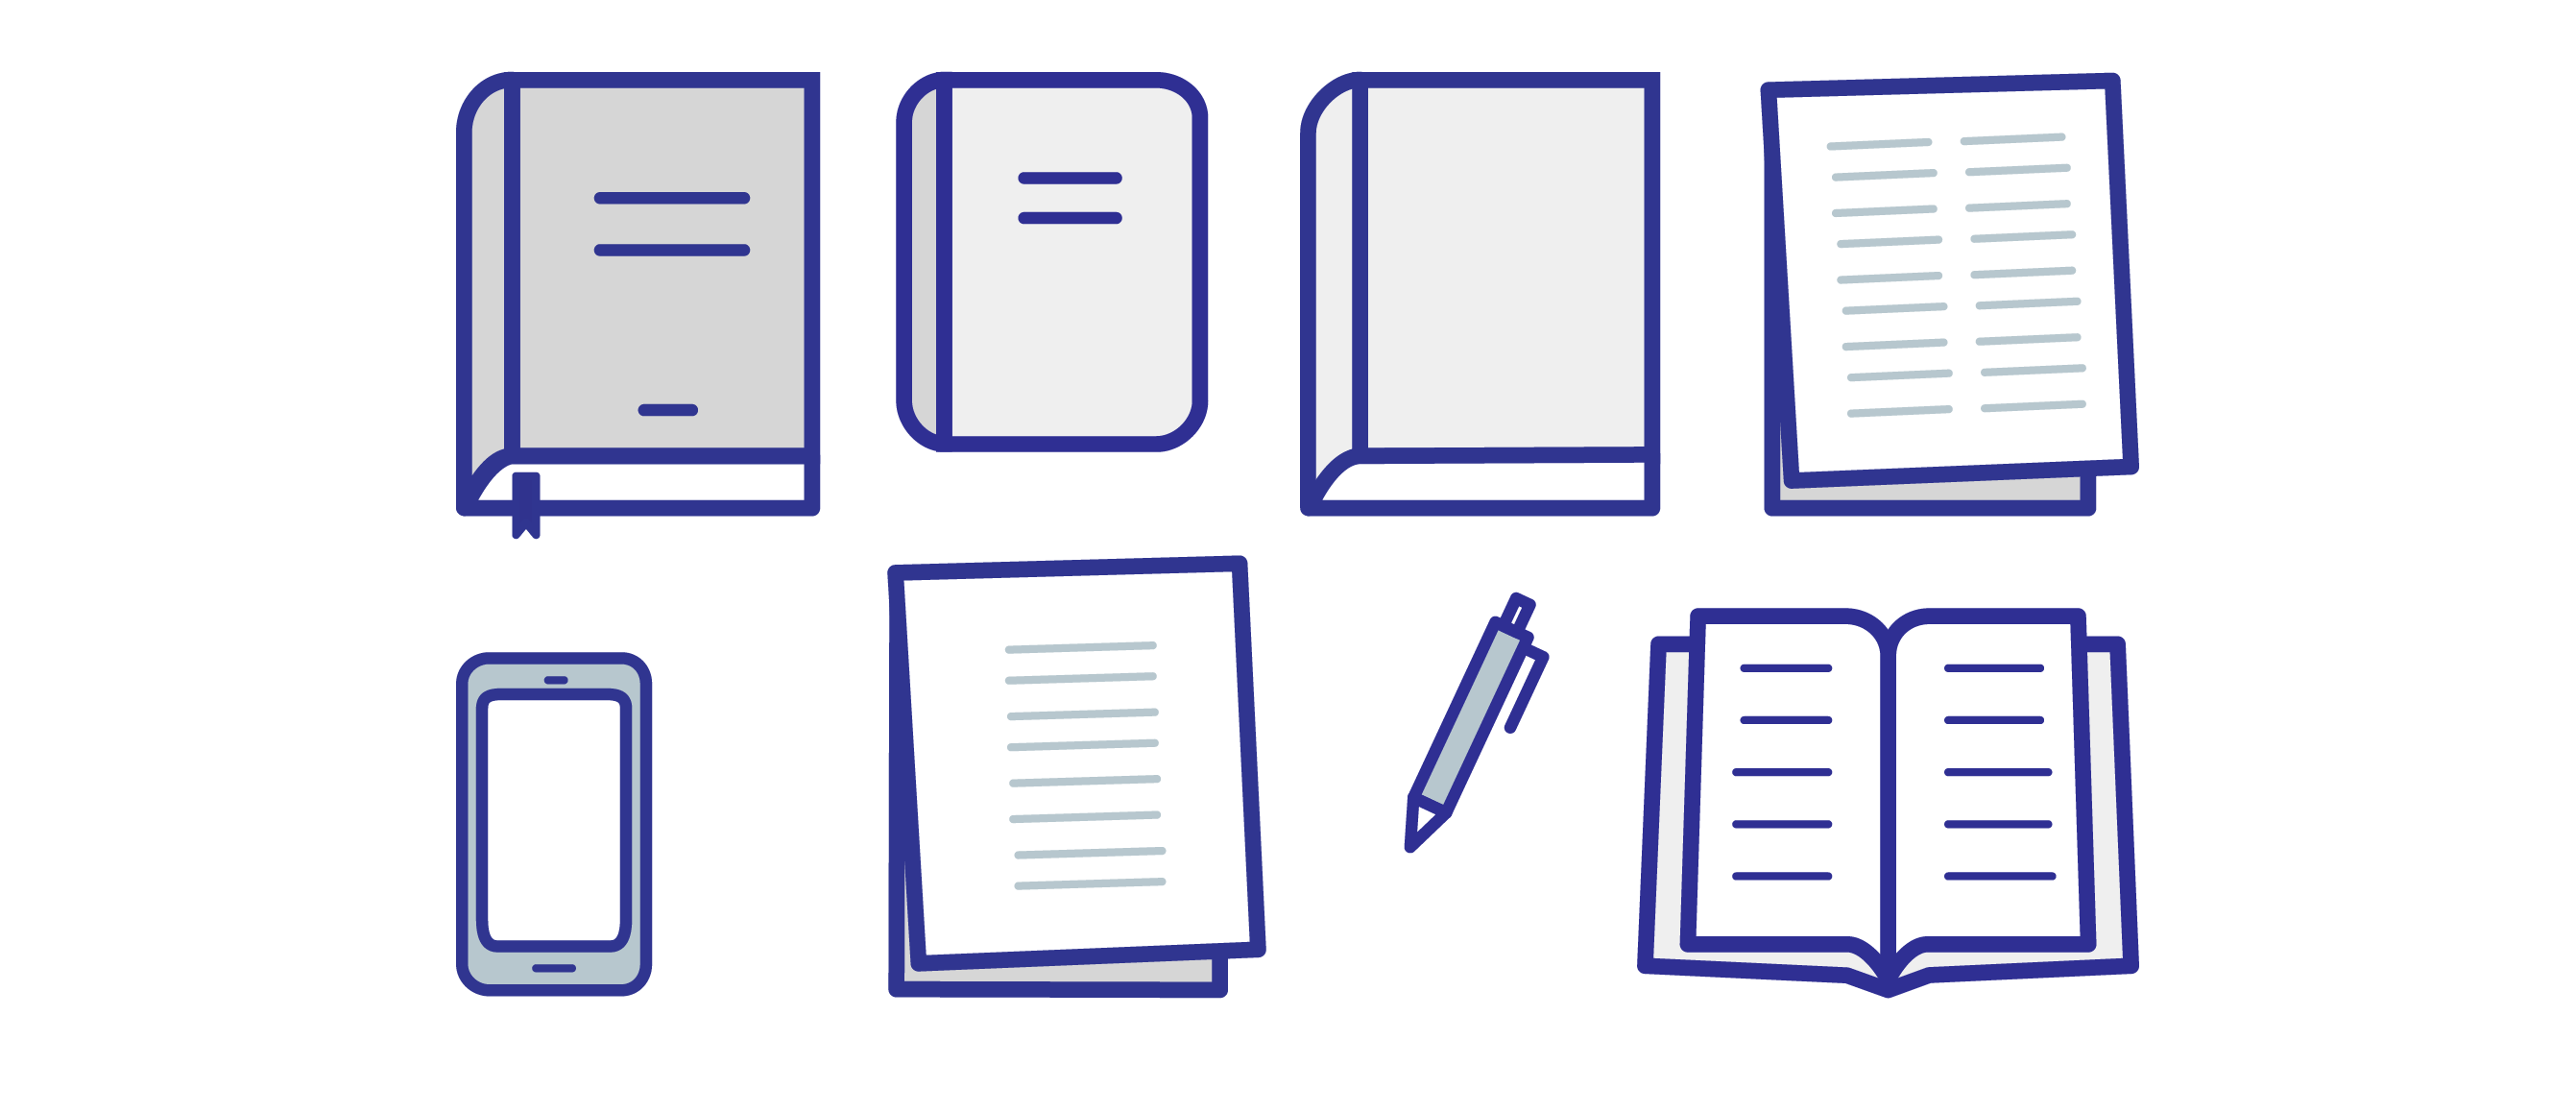 icon set - illustration of books